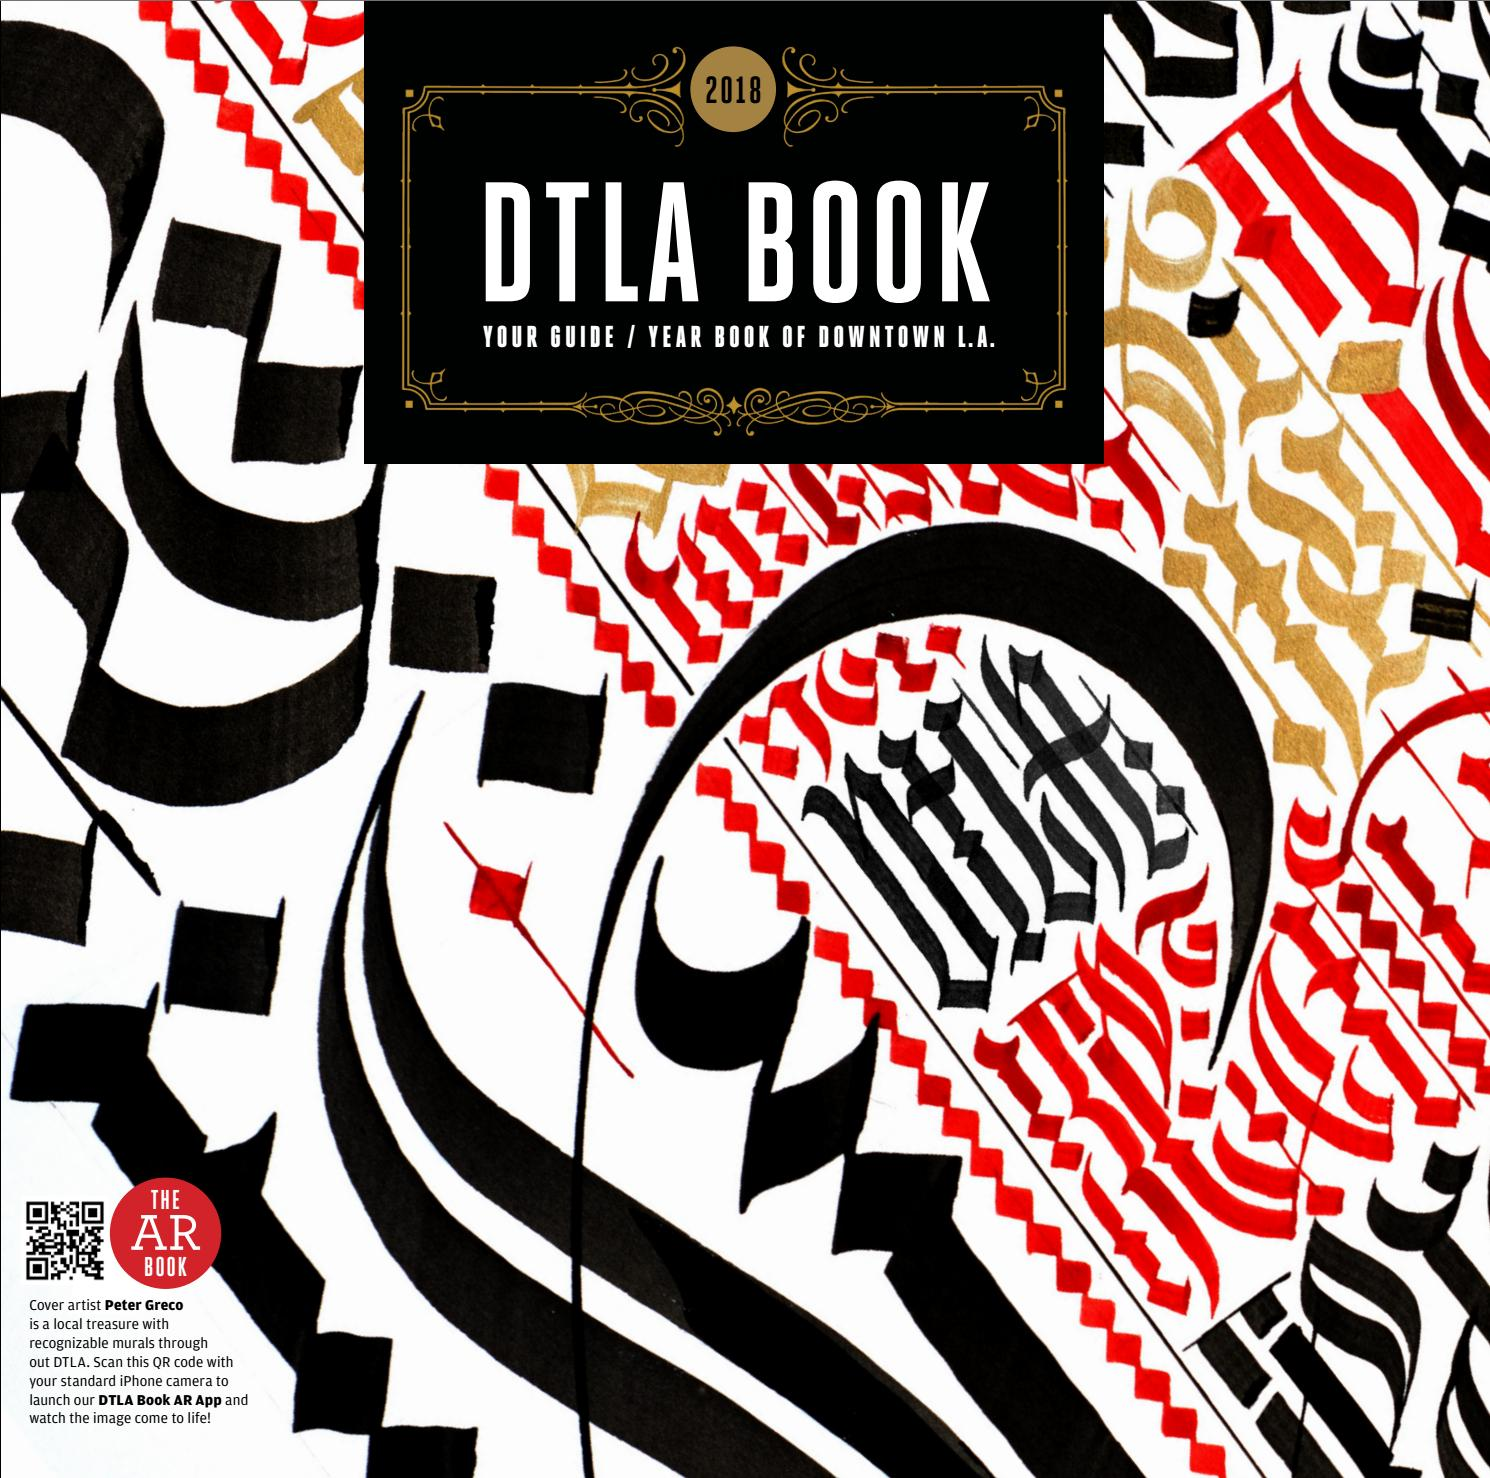 dtla book 2018 digital